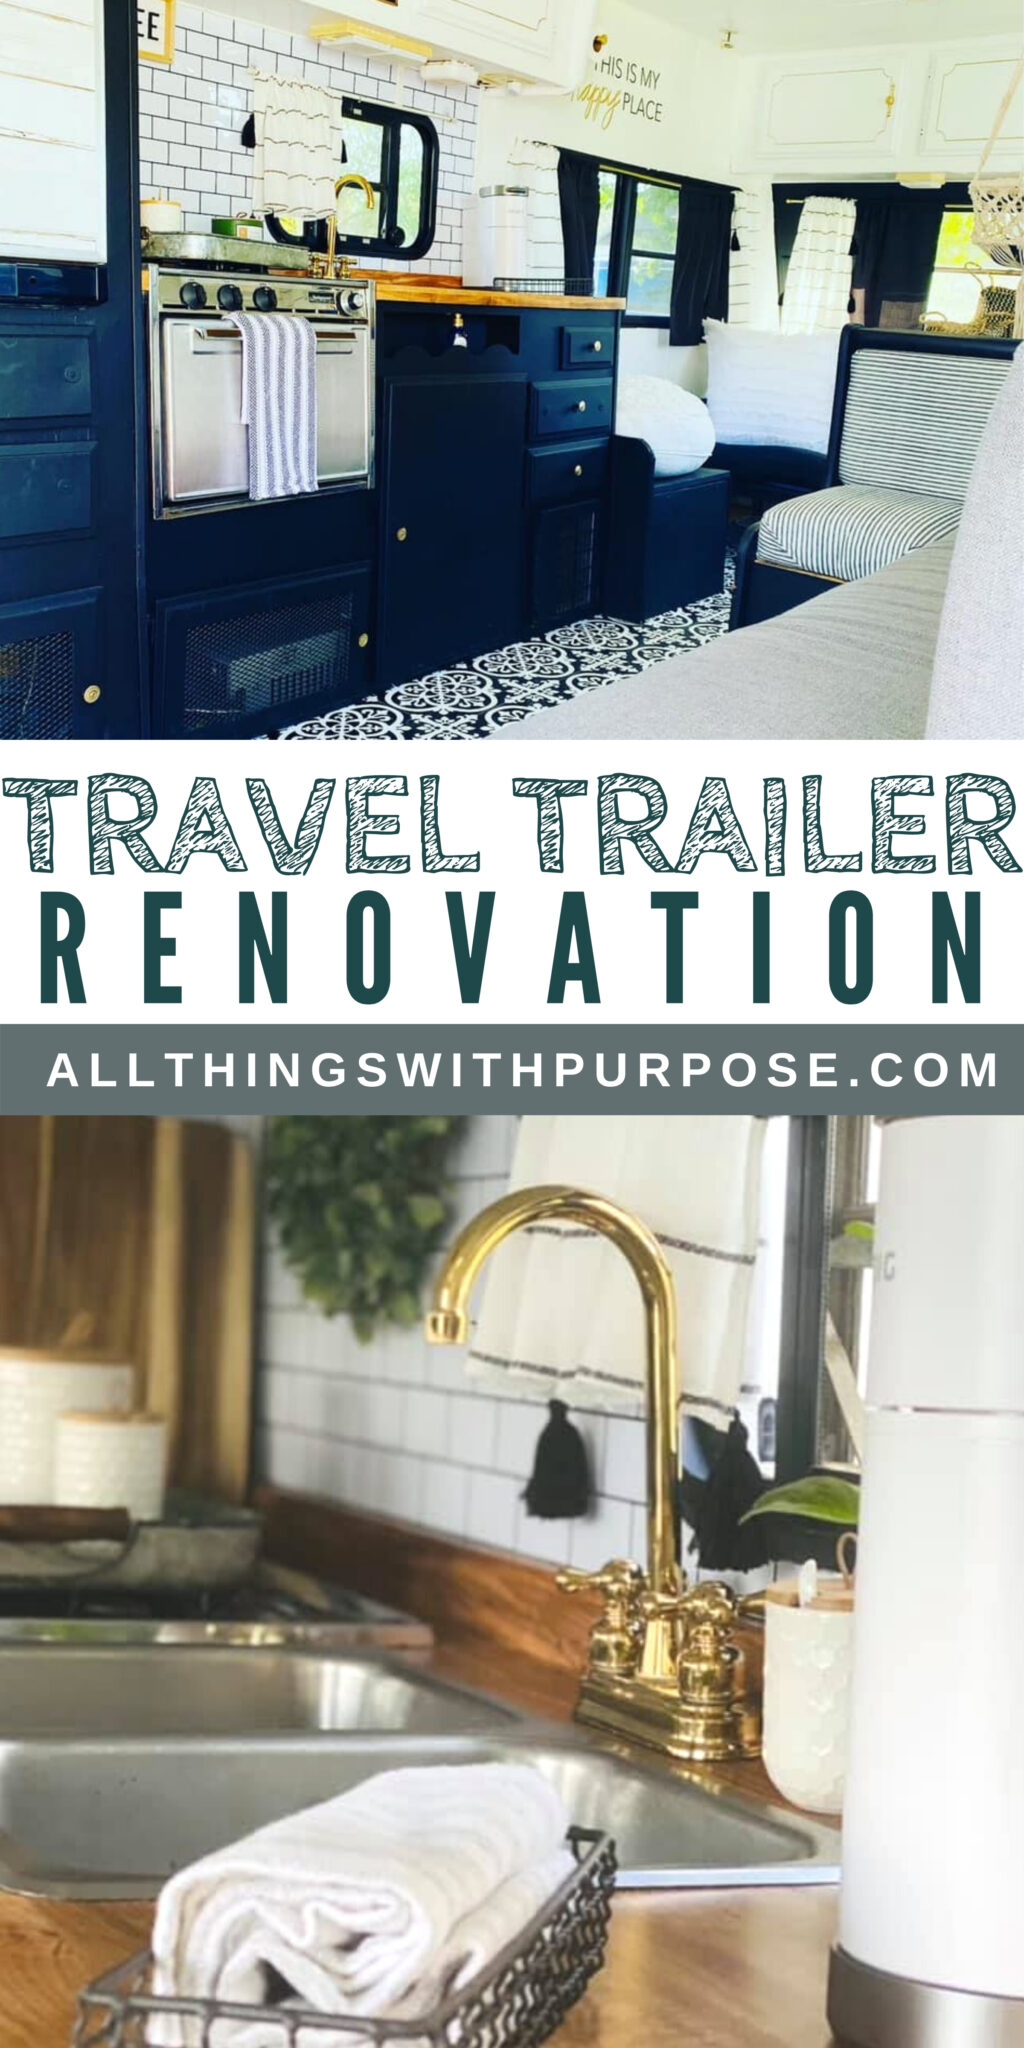 This 1984 Nomad RV Gets a Glamorous Upgrade All Things with Purpose Sarah Lemp 6